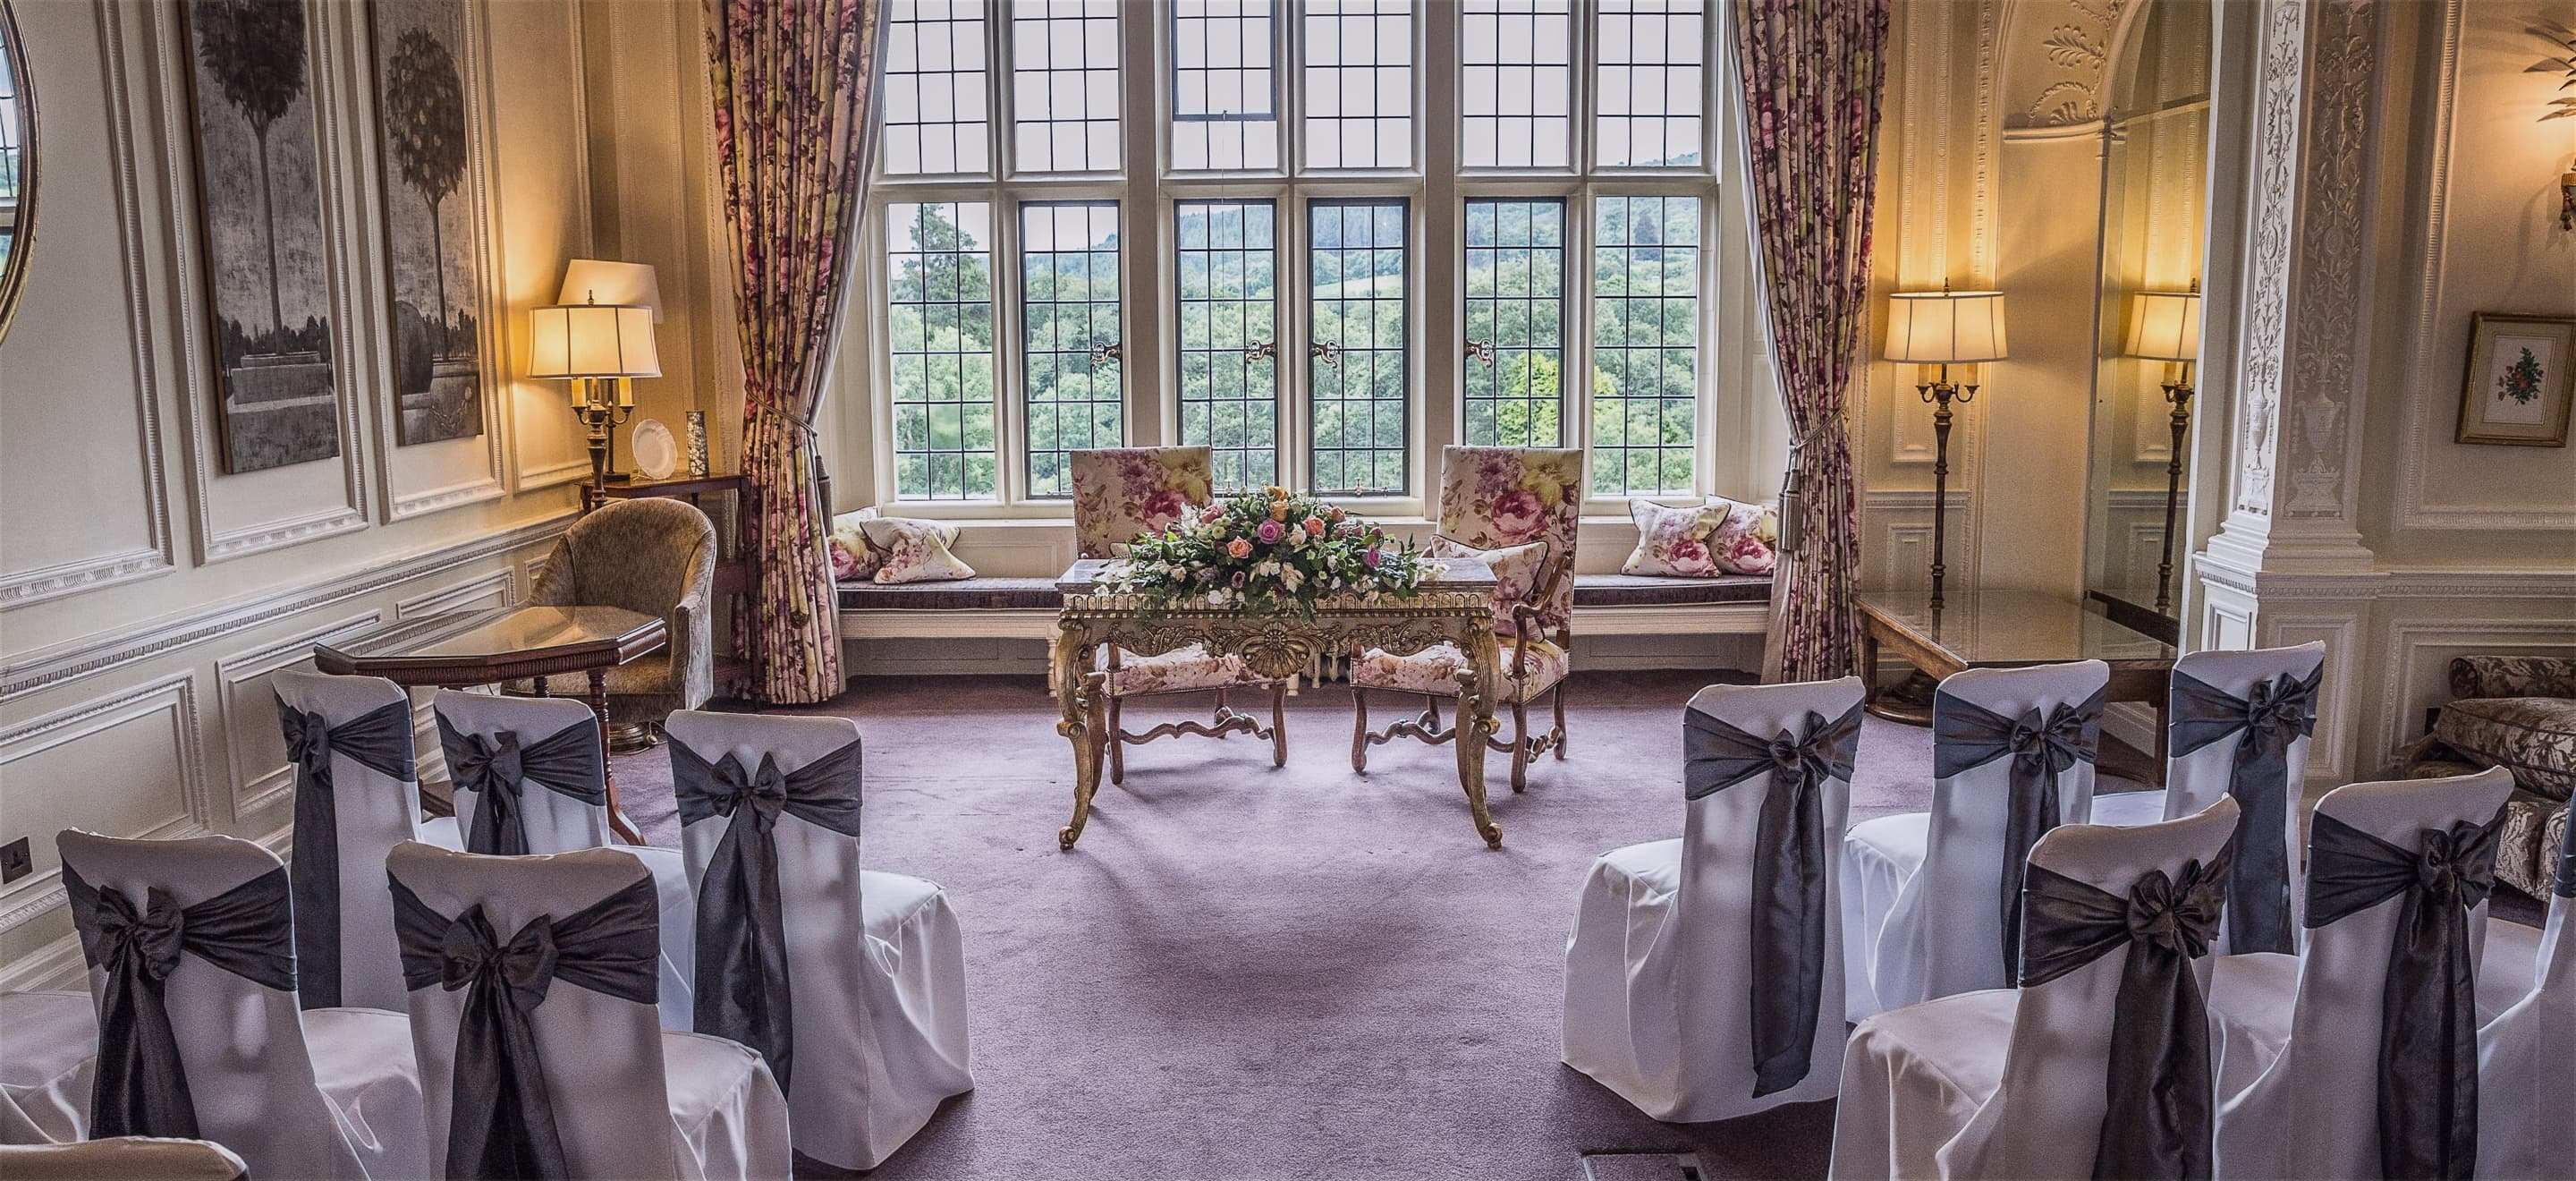 News Dream Castle Wedding Venue Bovey Castle 02